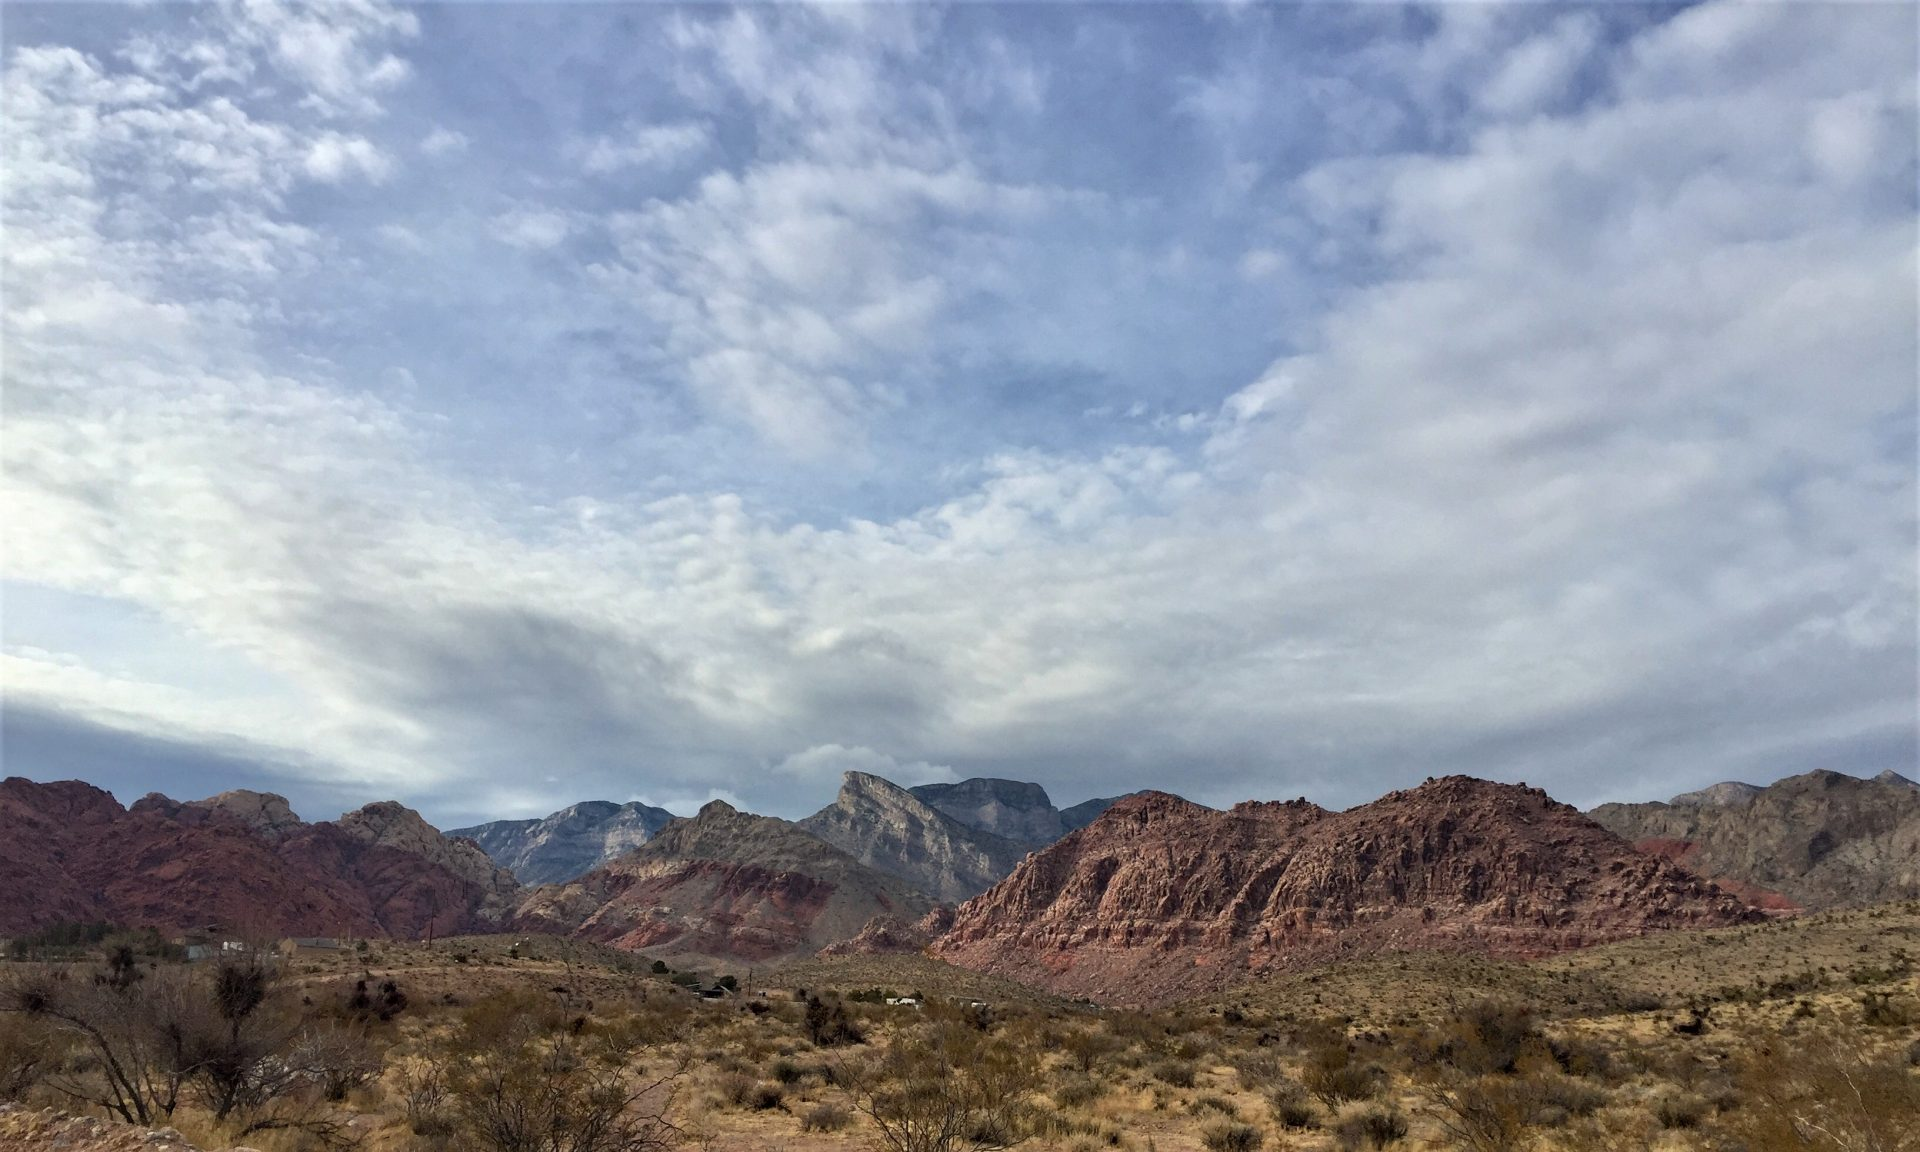 Las Vegas Nevada – Red Rock Canyon Part 2 (Feb 15 to 16)